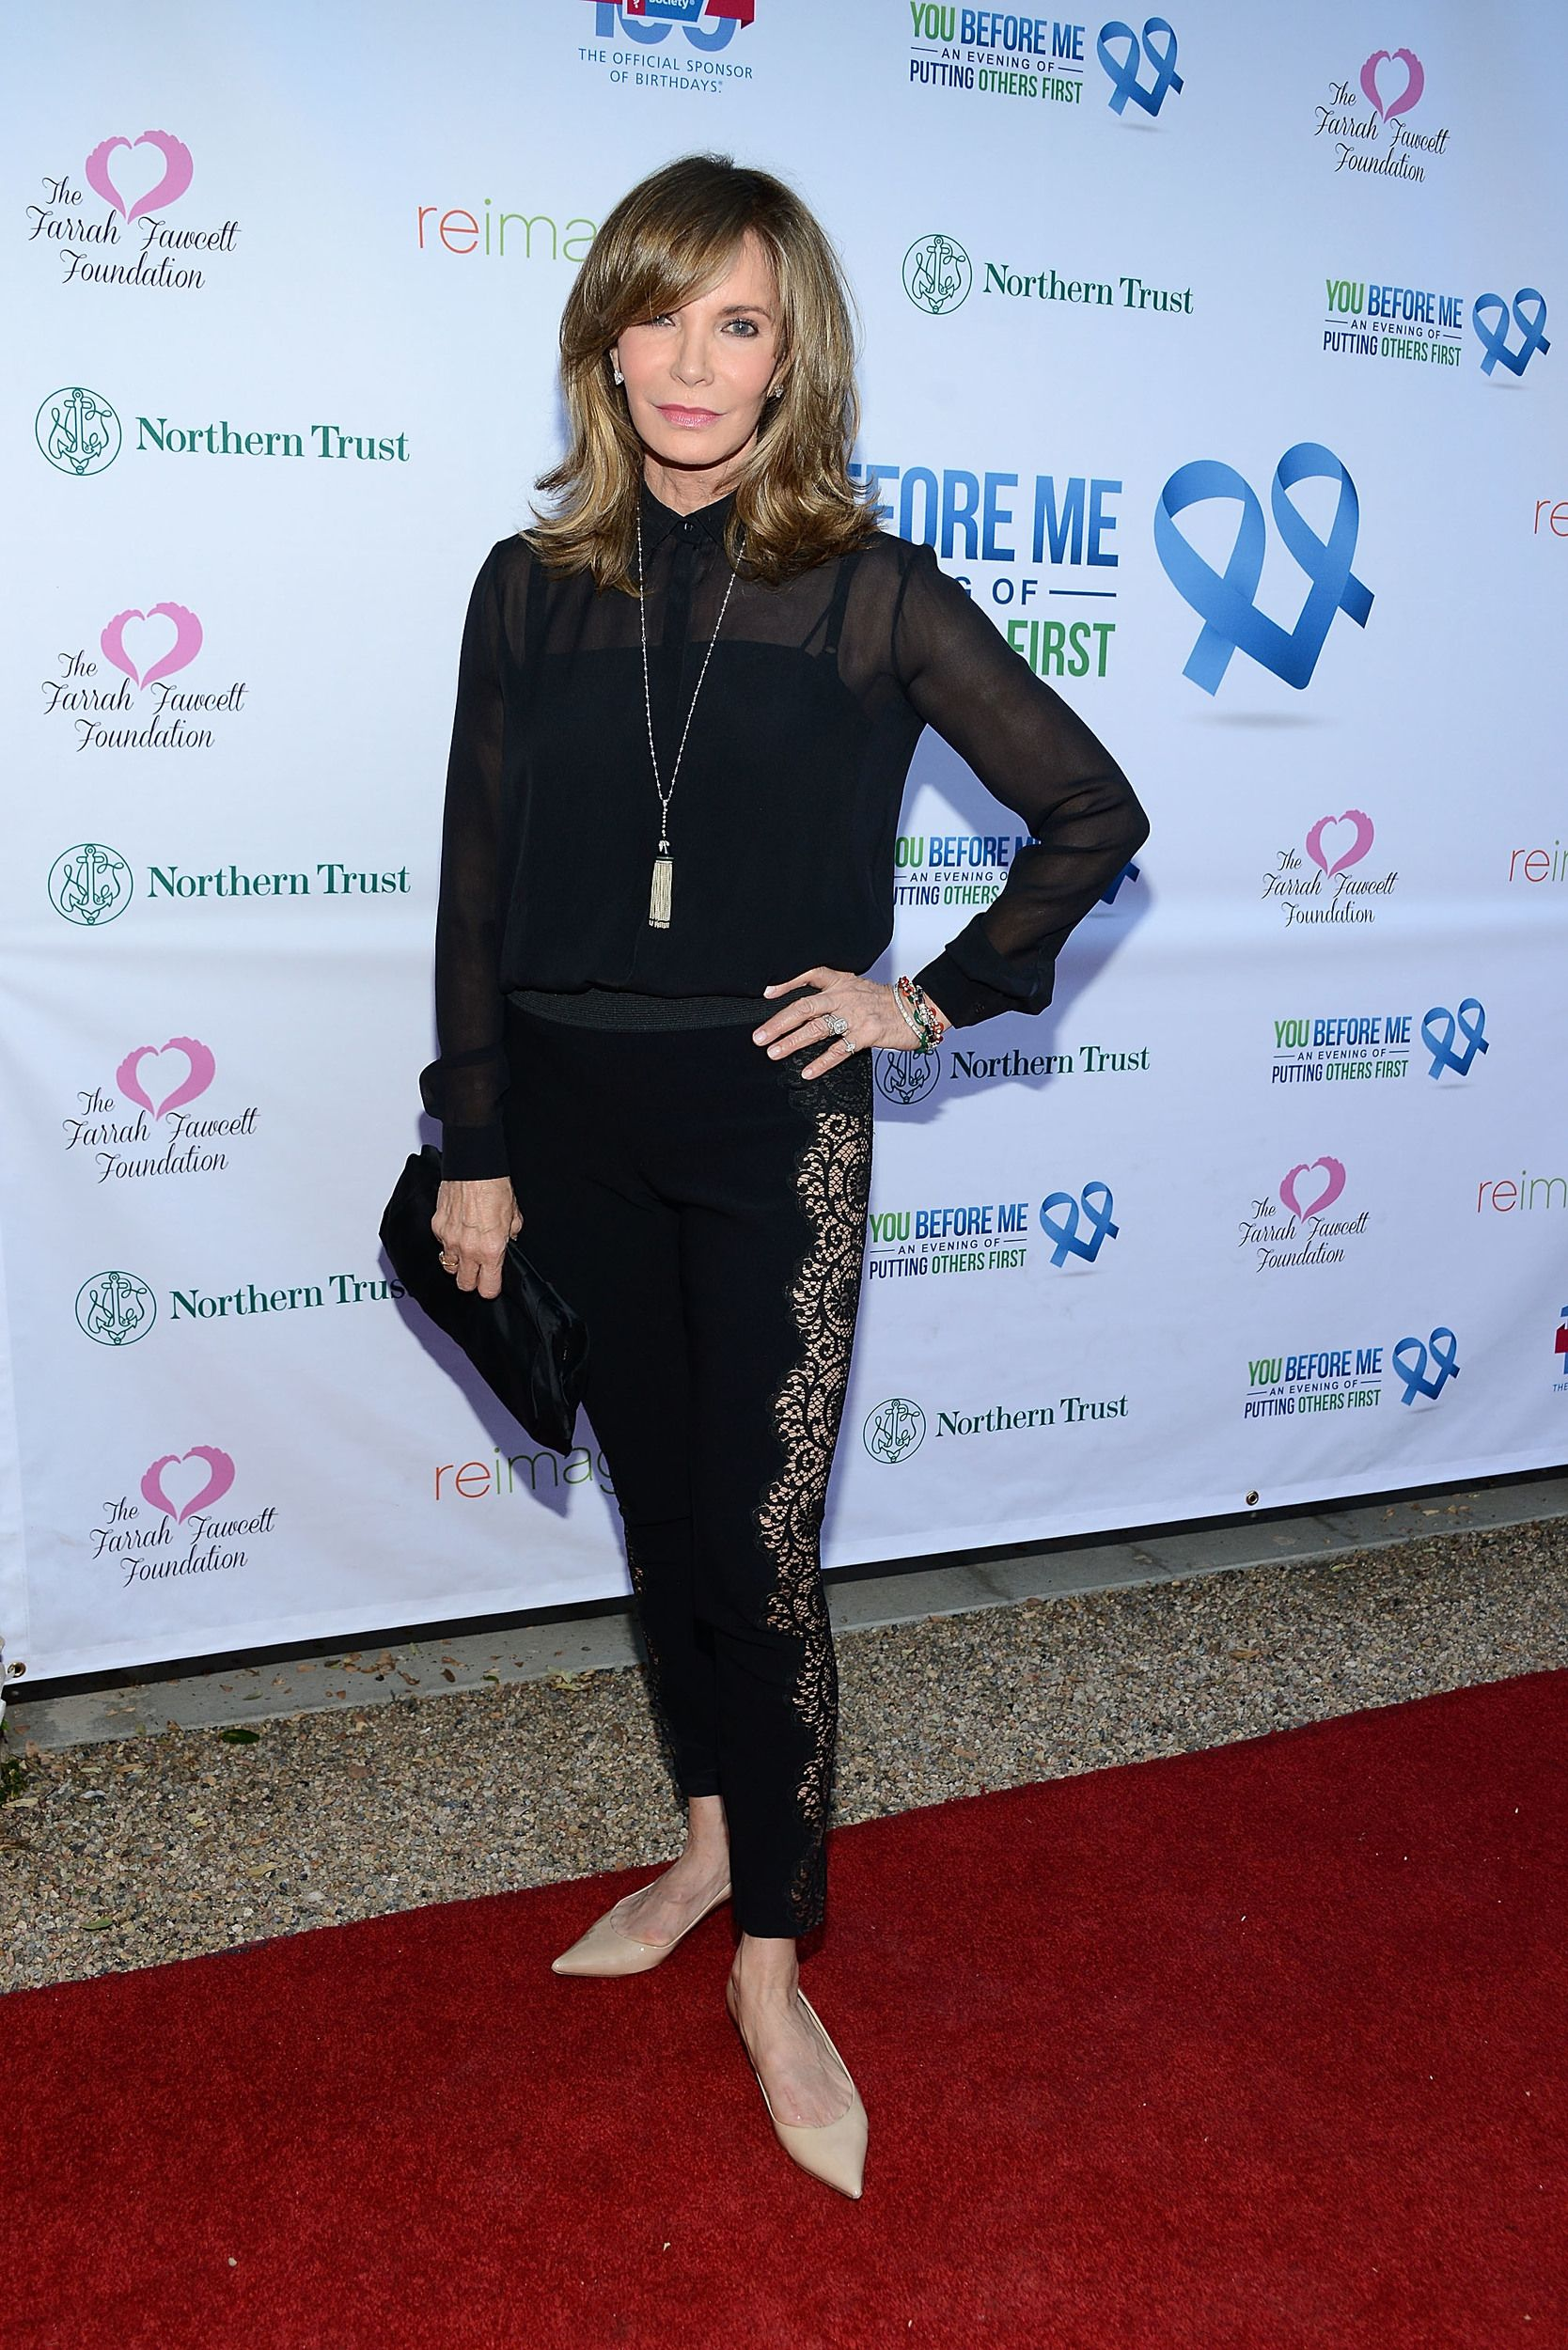 LOS ANGELES, CA - MAY 14:  Jaclyn Smith attends the You Before Me benefit for the 100th birthday of The American Cancer Society  on May 14, 2014 in Los Angeles, California.  (Photo by Araya Diaz/WireImage) via @AOL_Lifestyle Read more: https://www.aol.com/article/entertainment/2017/06/15/charlies-angels-jaclyn-smith-ageless-at-71/22303325/?a_dgi=aolshare_pinterest#fullscreen